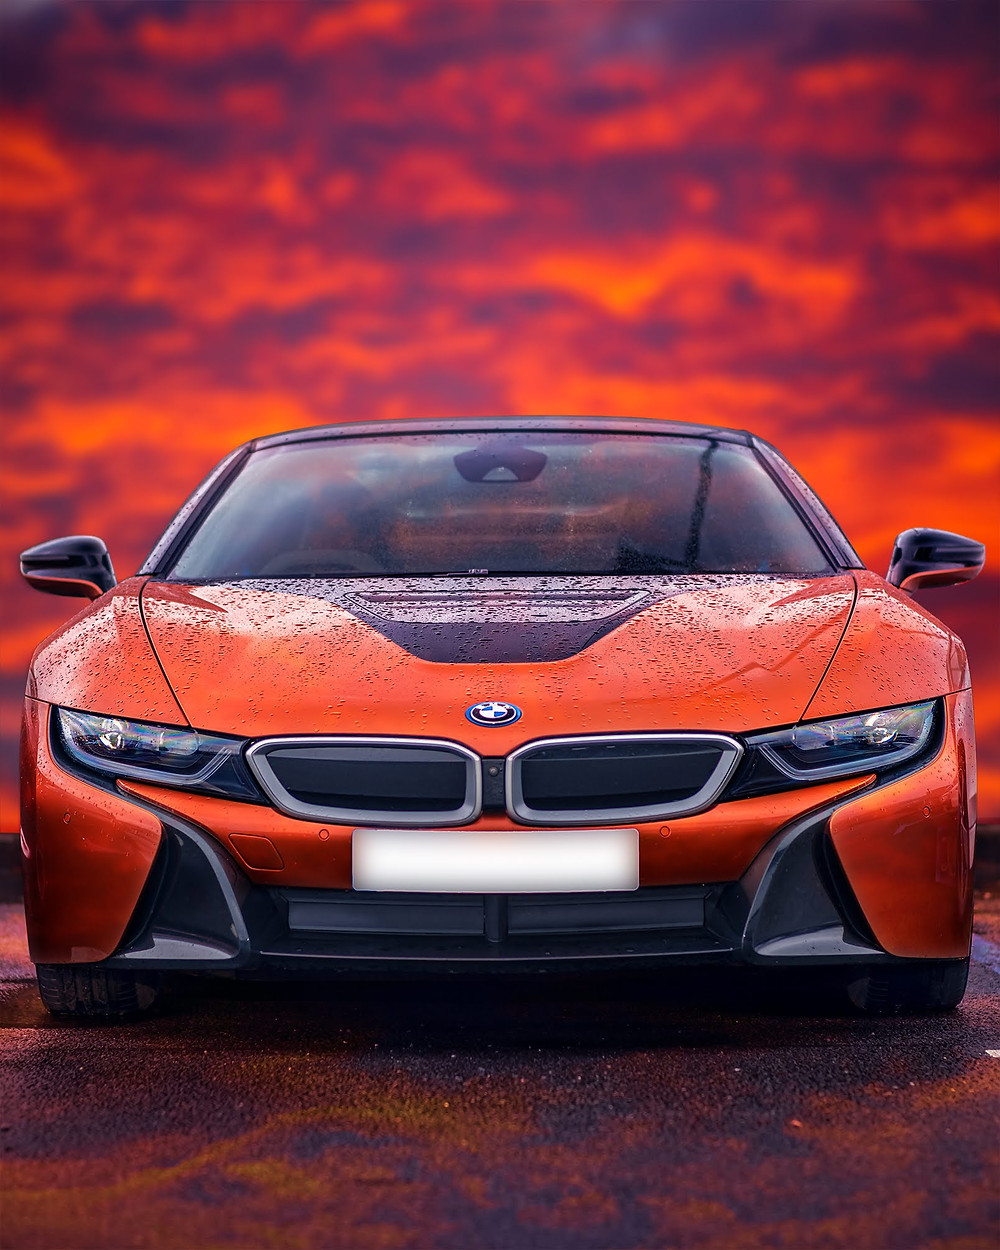 BMW i8 Roadster front face poster